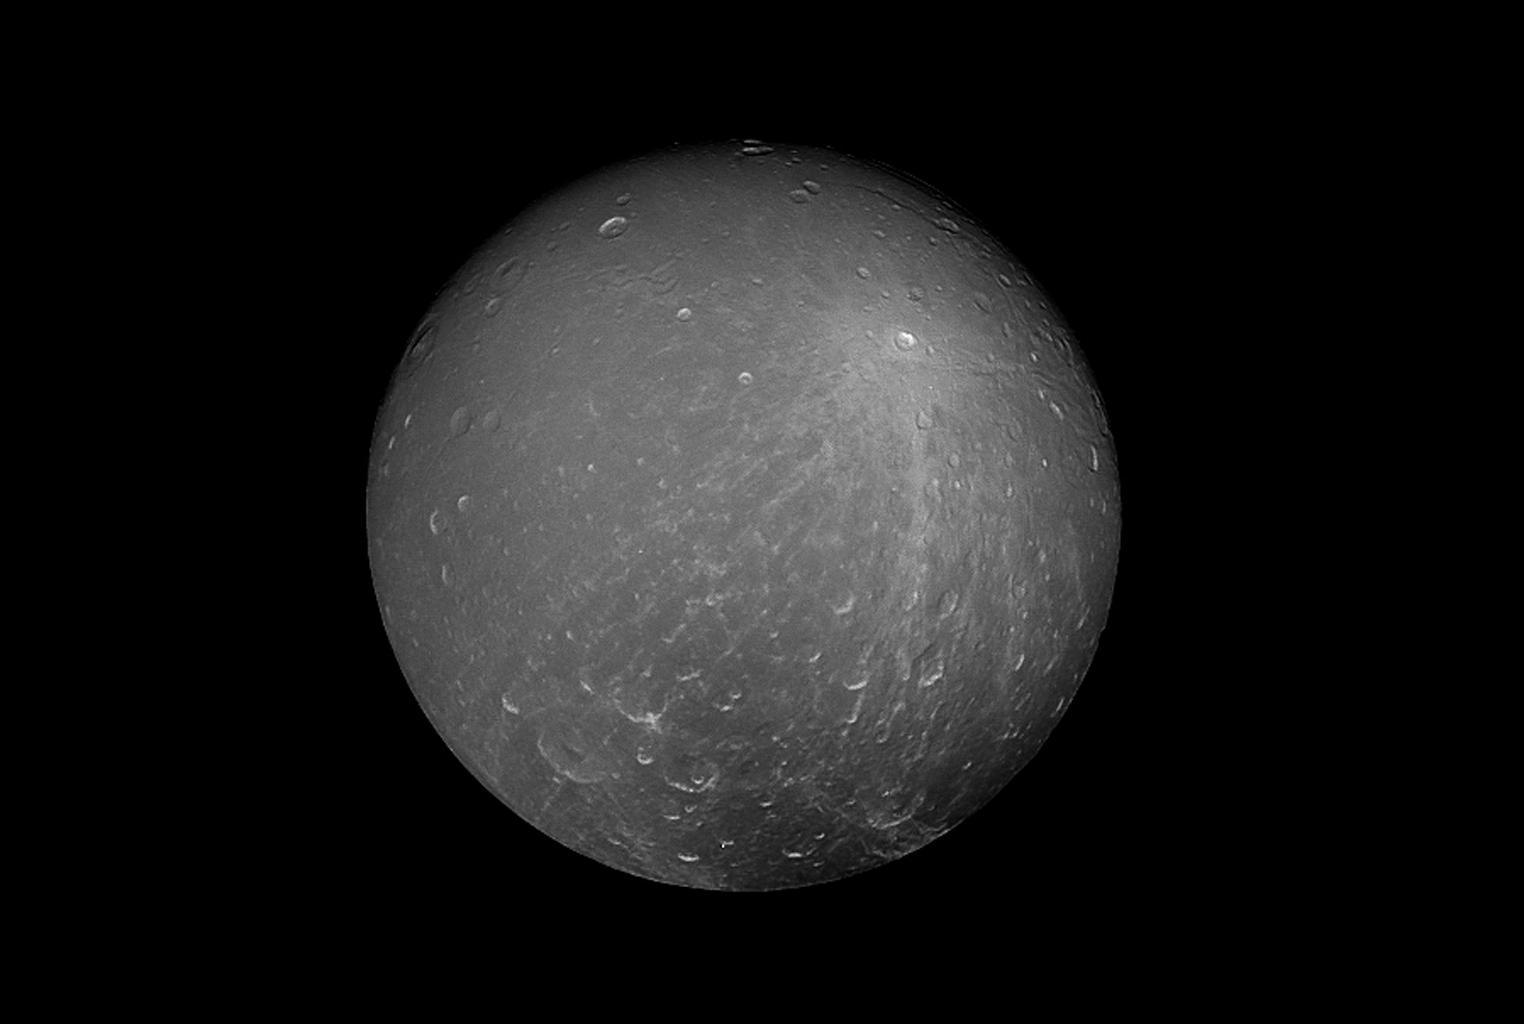 NASA's Cassini spacecraft captured this striking view of Saturn's moon Dione on July 23, 2012. Its density suggests that about a third of the moon is made up of a dense core (probably silicate rock) with the remainder of its material being water ice.